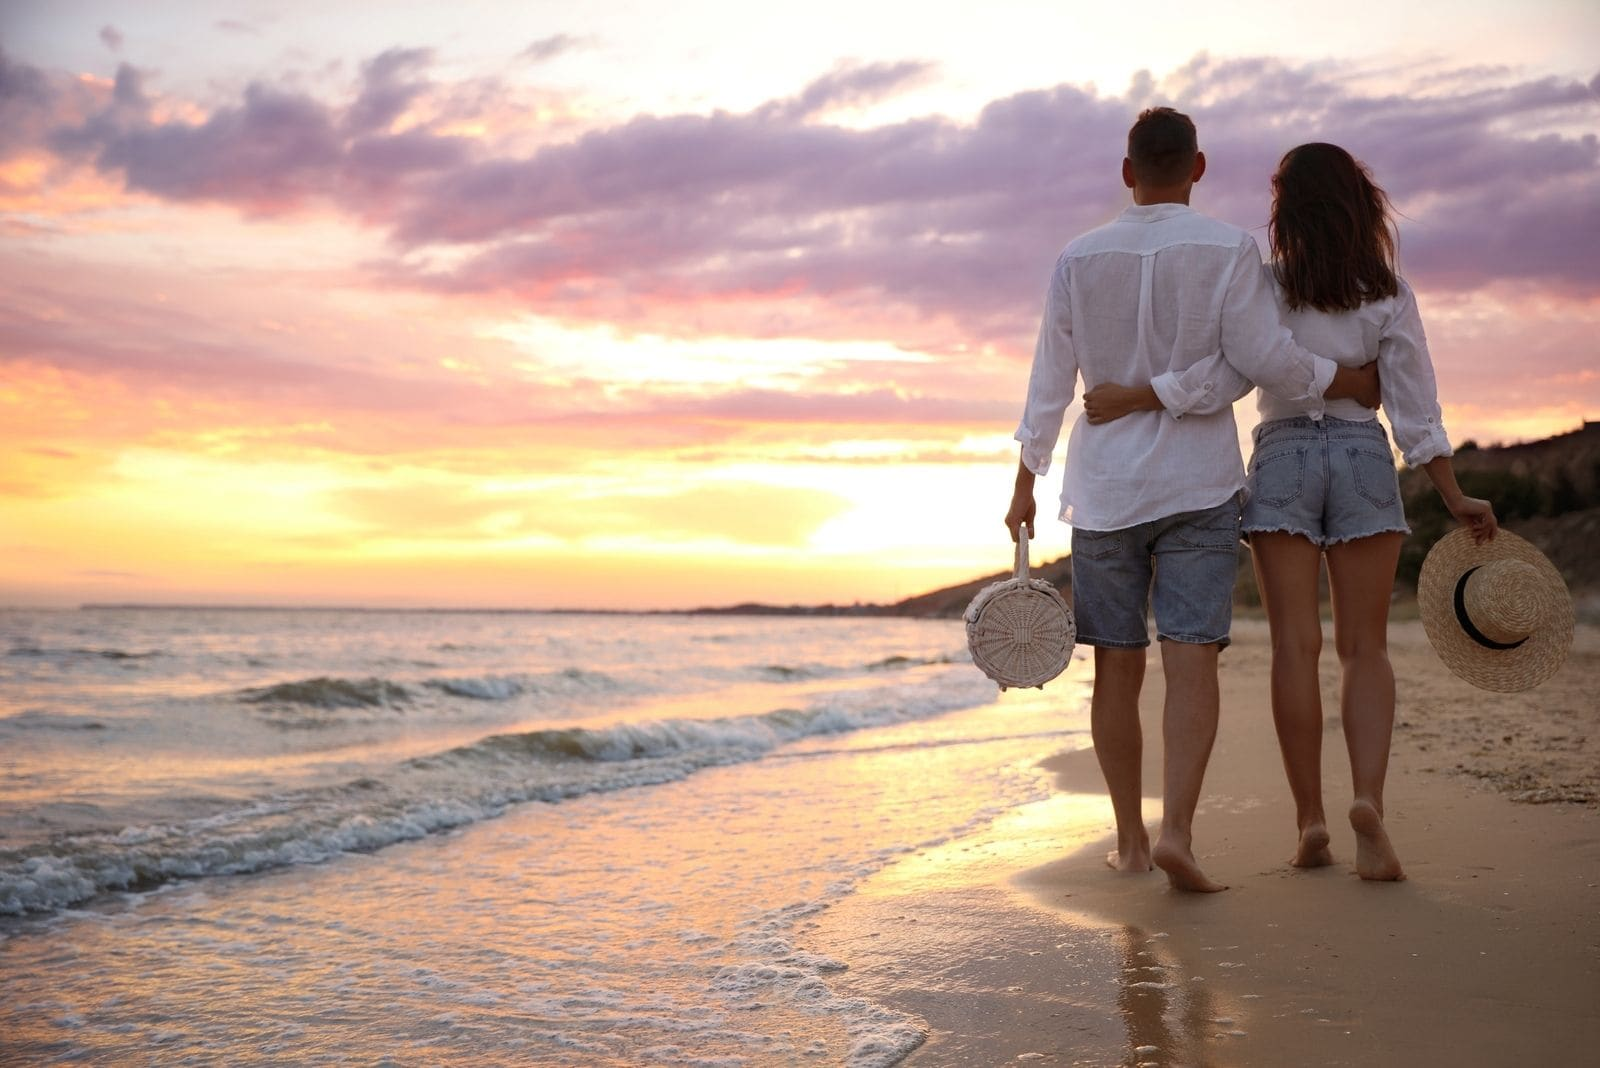 lovely couple walking on the beach side by side during sunset